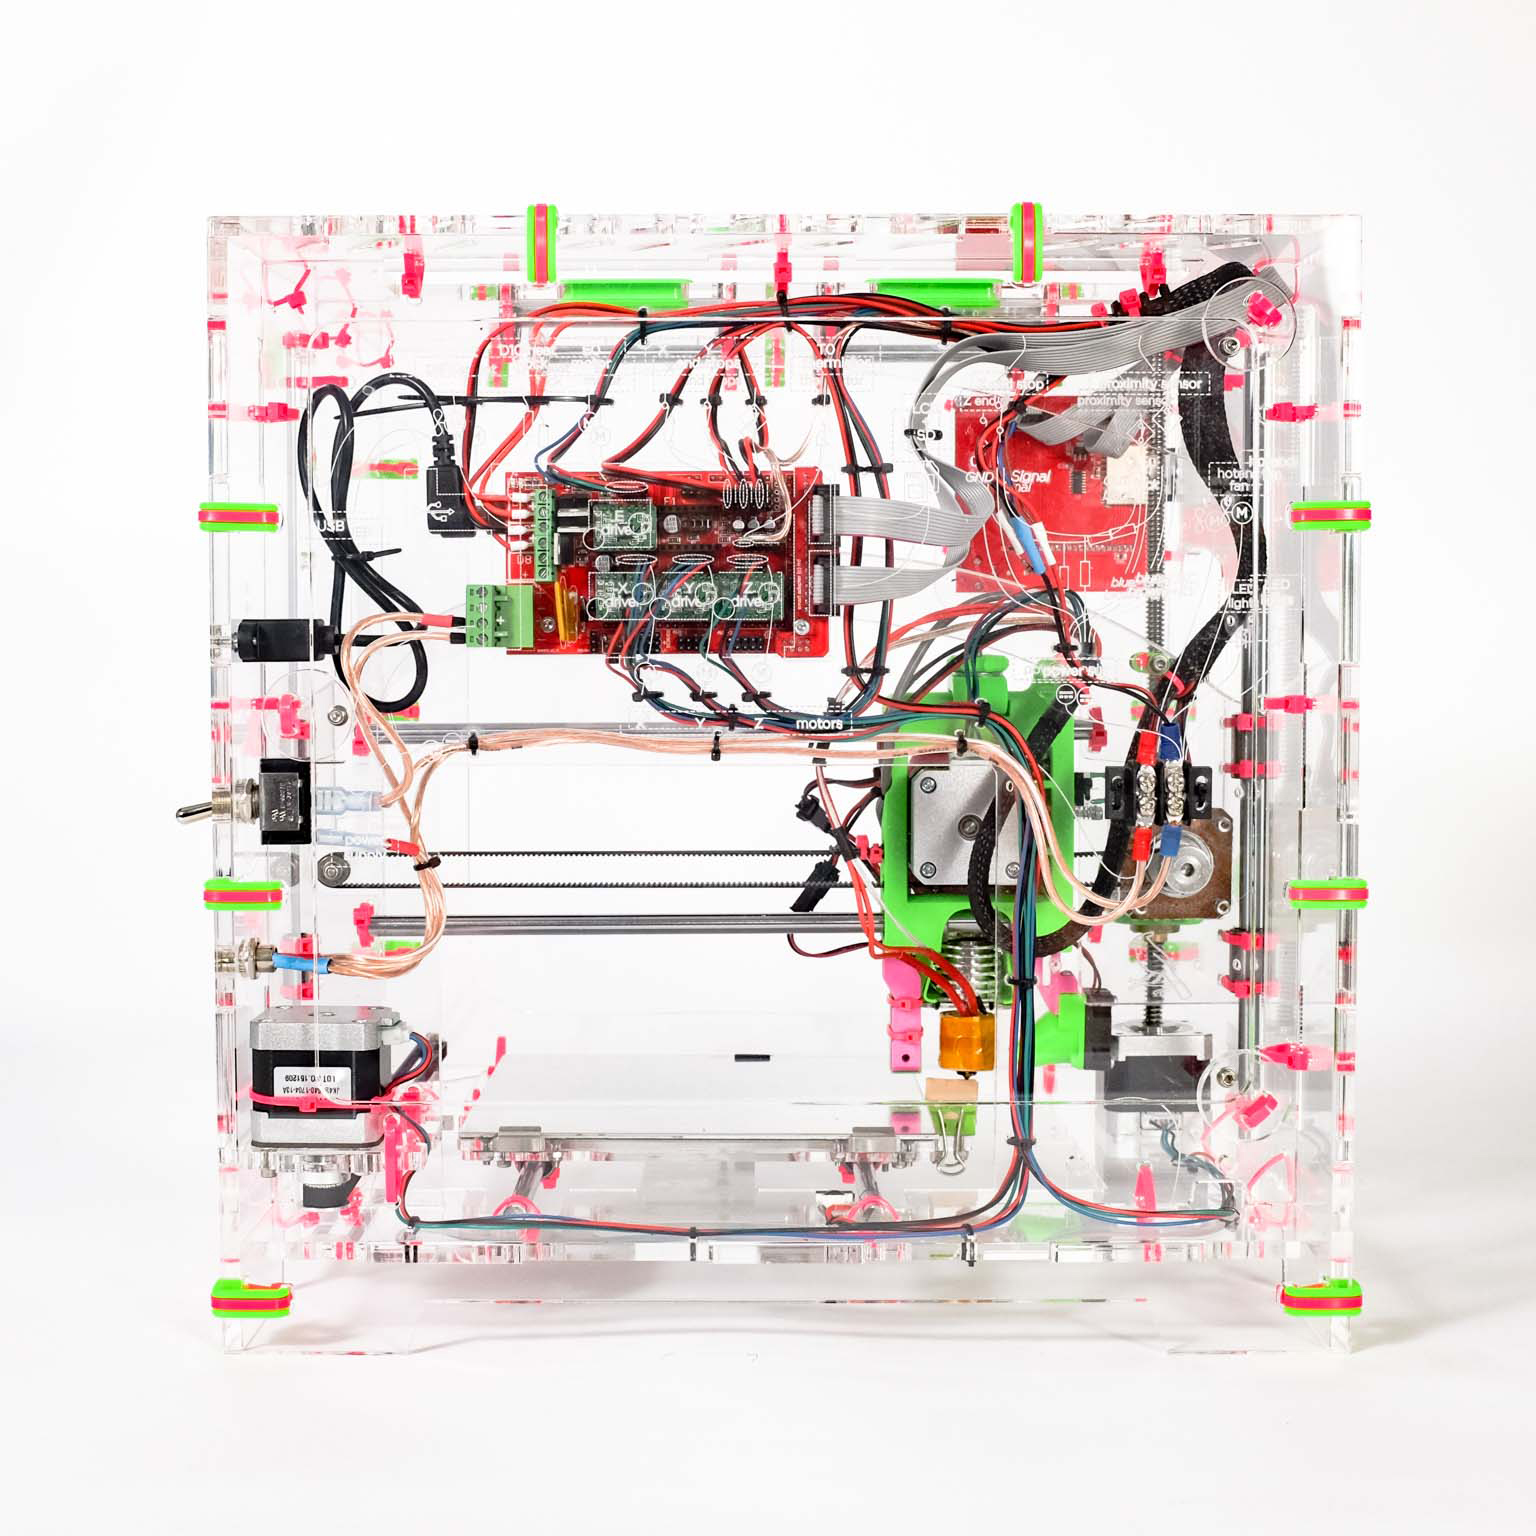 Jellybox Easy Build Review 3d Printing Wiring Harness Used For Printer